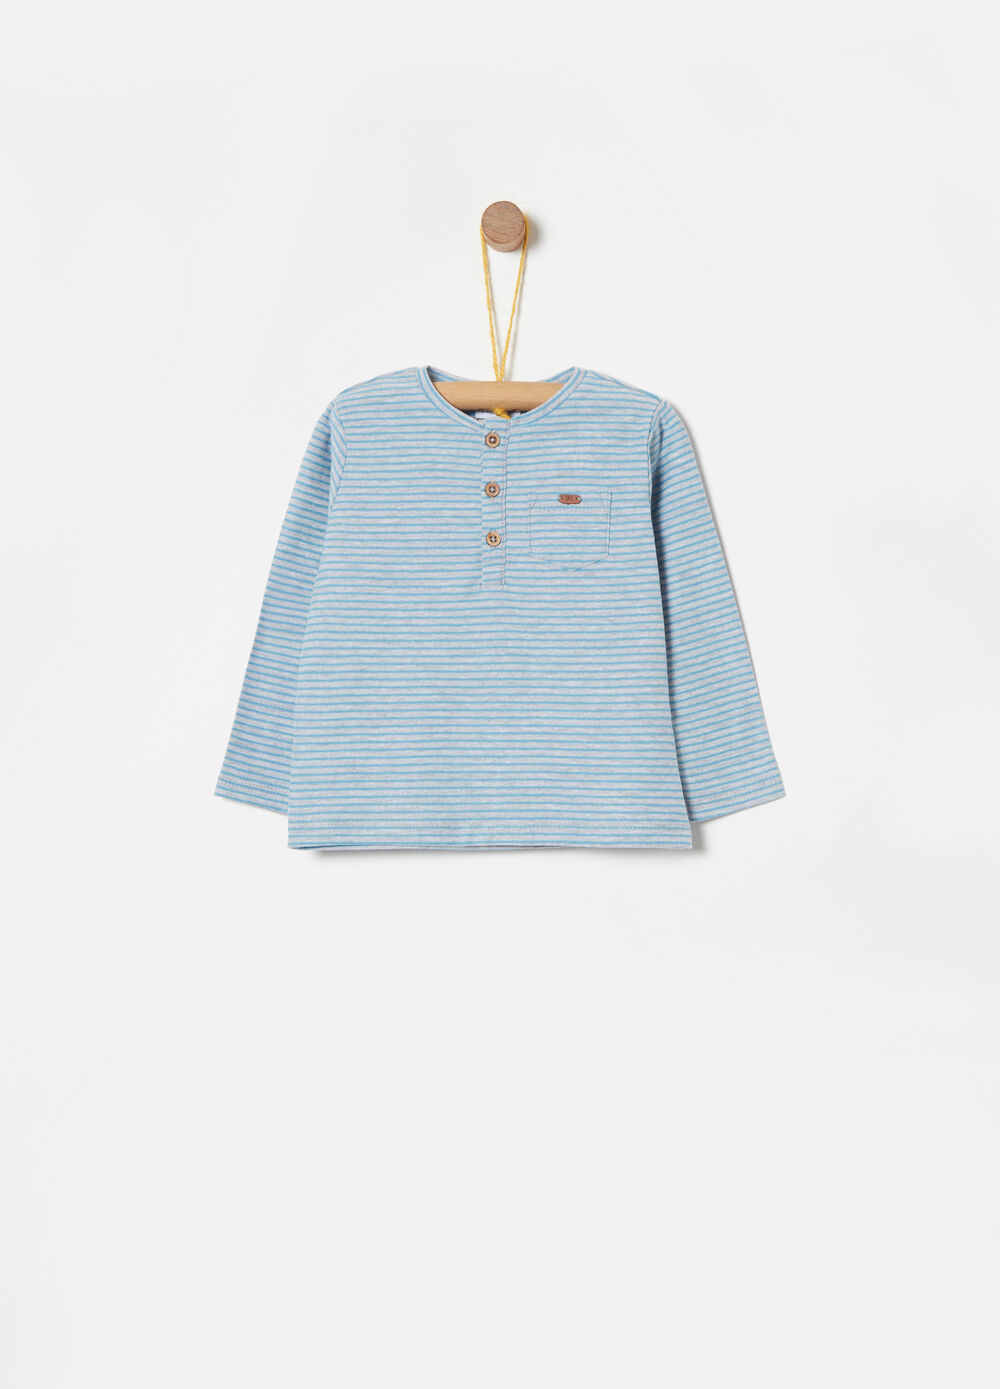 100% cotton T-shirt with striped pocket